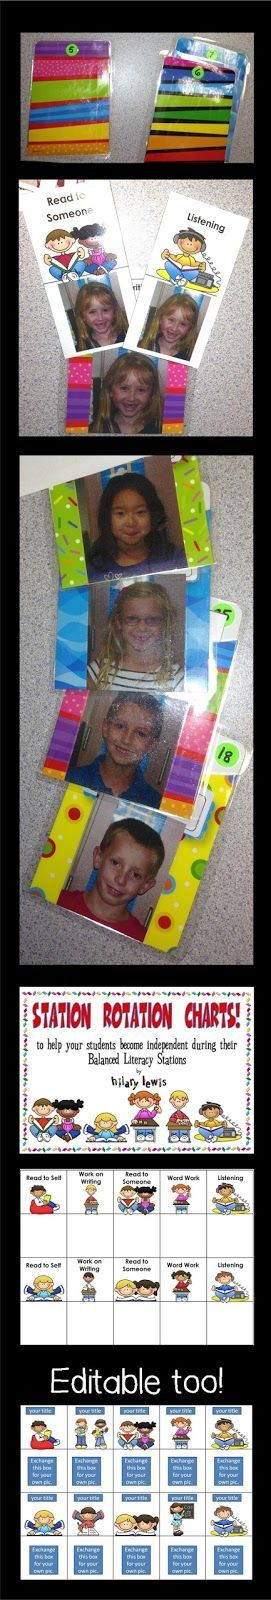 I love letting my kids choose their own stations and I made a few adjustments this year. Not only did I put the kids' pictures on the cards, but I also put their pictures on the library card pouches that hold the cards. http://rockinteachermaterials.blogspot.com/2012/09/daily-5-organization-video.html (scheduled via http://www.tailwindapp.com?utm_source=pinterest&utm_medium=twpin&utm_content=post7050728&utm_campaign=scheduler_attribution)